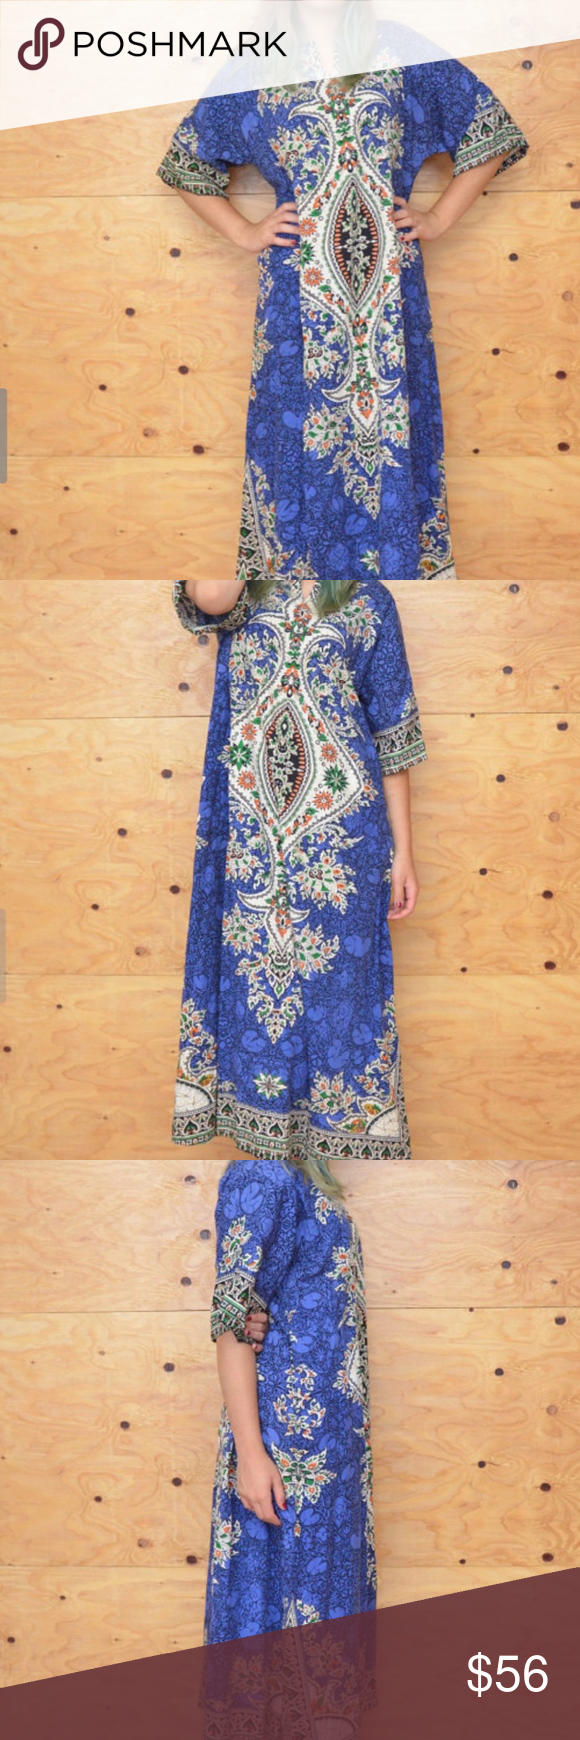 """Vintage 70's Blue & Black Thai Caftan, Maxi Length DESCRIPTION: Blue and black cotton Thai caftan dress. Dramatic look, great feel, short sleeves, long maxi length. Unique look and flare, great for that bohemian summer day at the beach.   Condition: EXCELLENT~ Previously worn, with only very slight wear; no flaws  ITEM MEASUREMENTS  Shoulder: 16"""" Bust: Open Waist: Open Hip: Open Length: 52"""" Sleeves: 12"""" Dresses Maxi"""